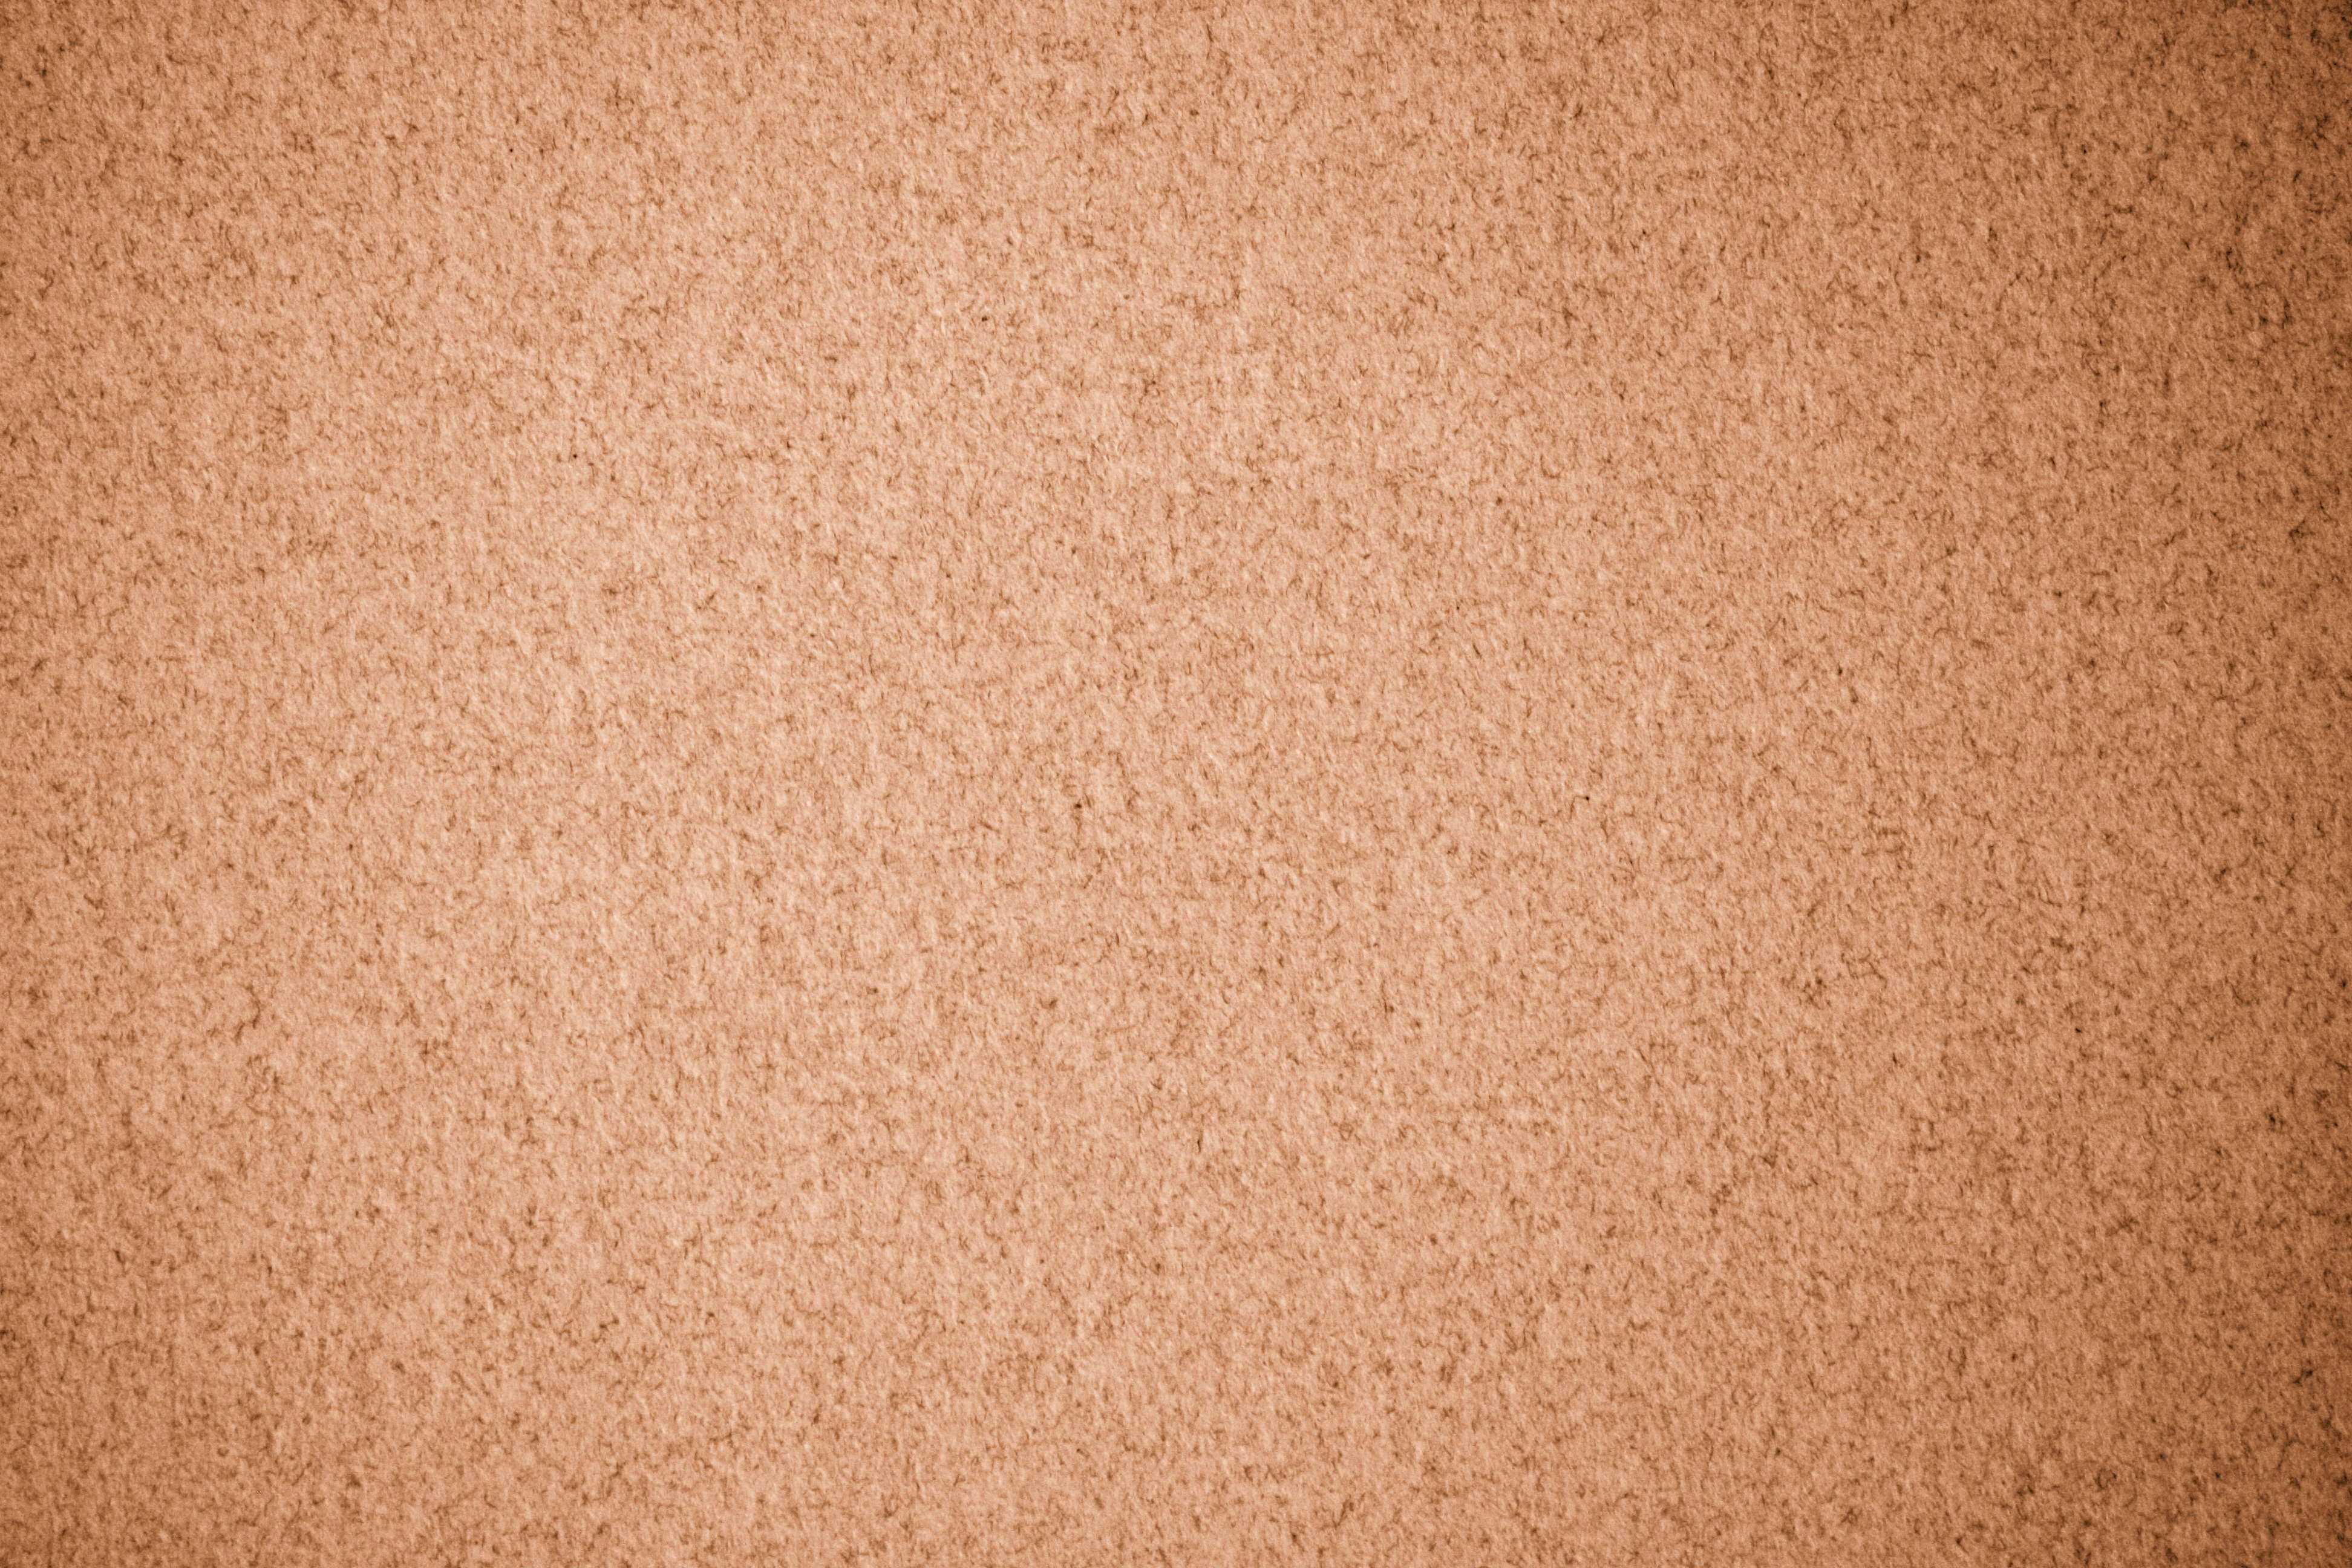 Brown Speckled Paper Texture – Free High Resolution Photo